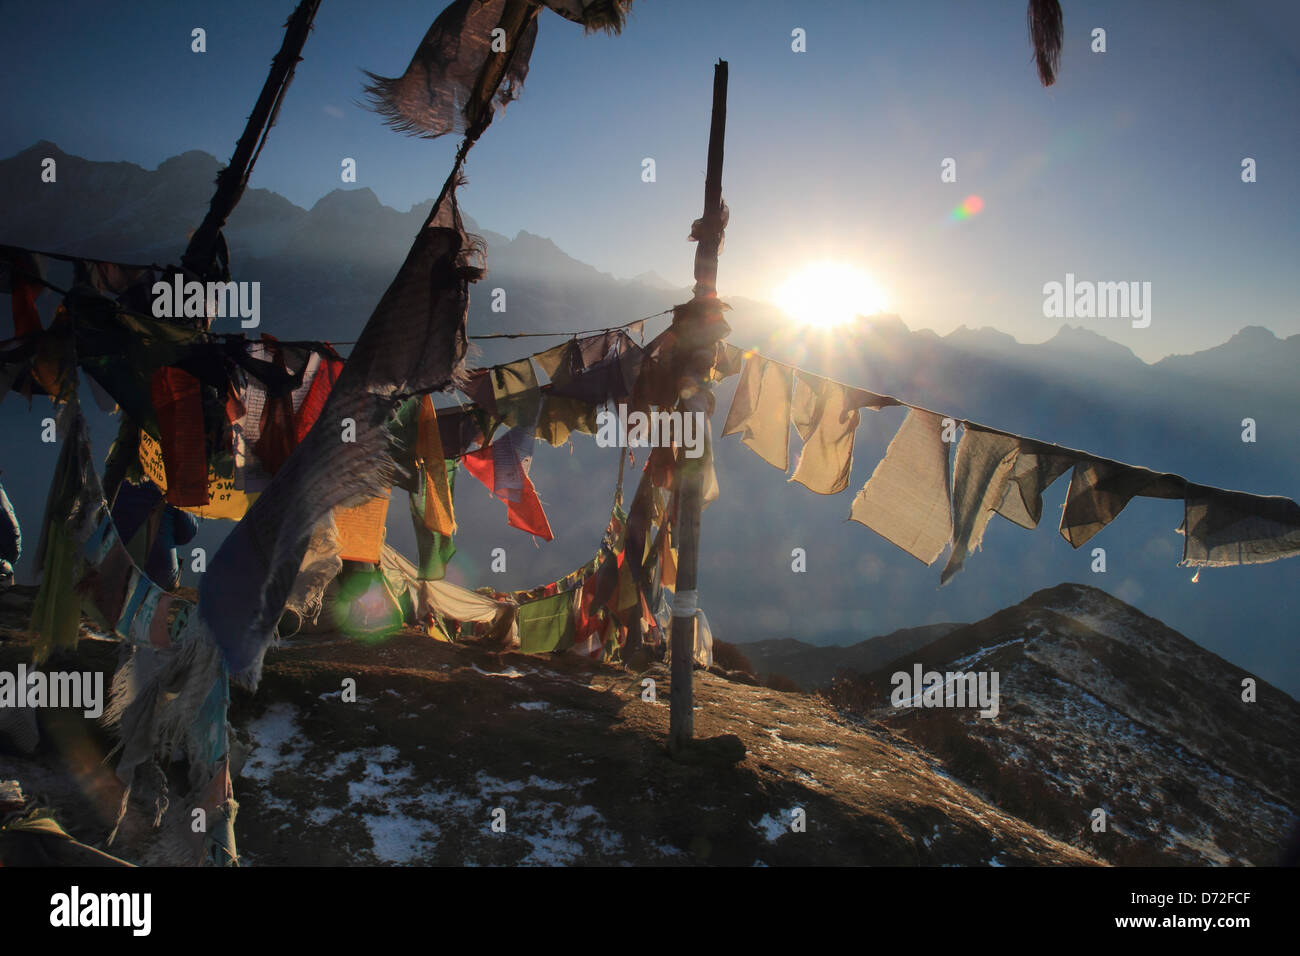 Prayer flag symbolizes the veneration of Indian descent who live in the valleys of Tibet. - Stock Image